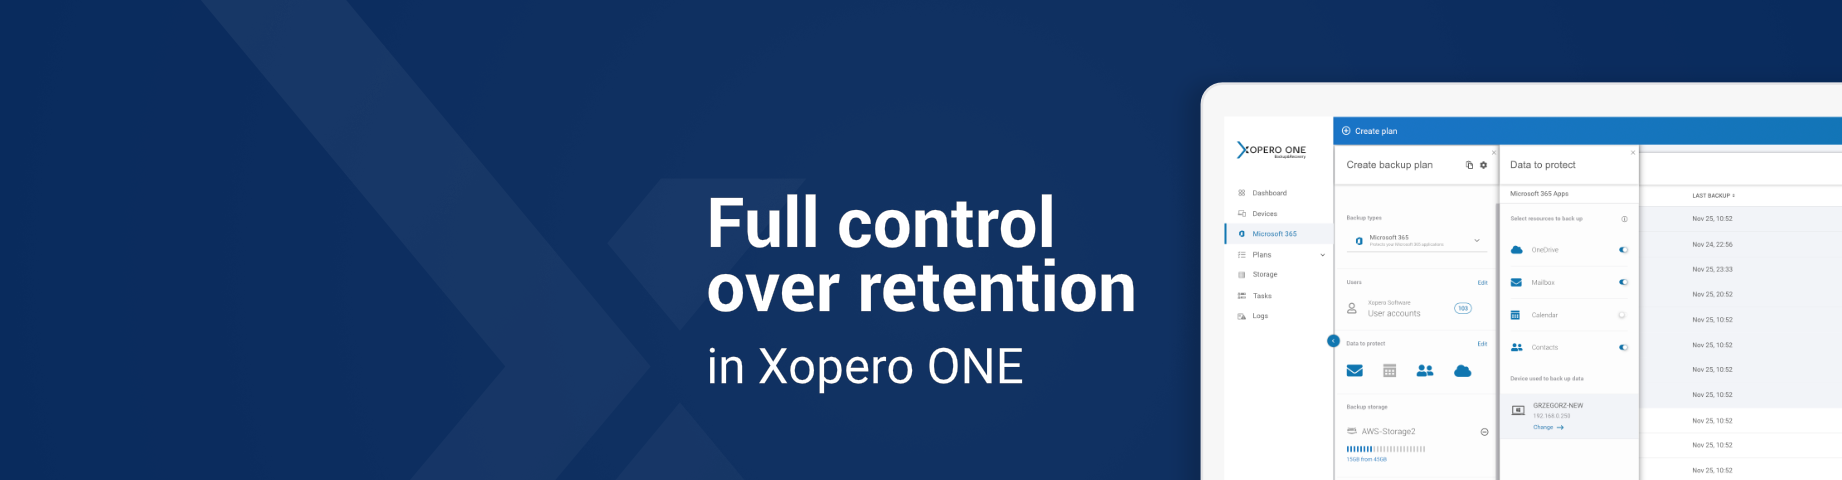 Retention policies in Office 365 vs full control over retention in Xopero ONE